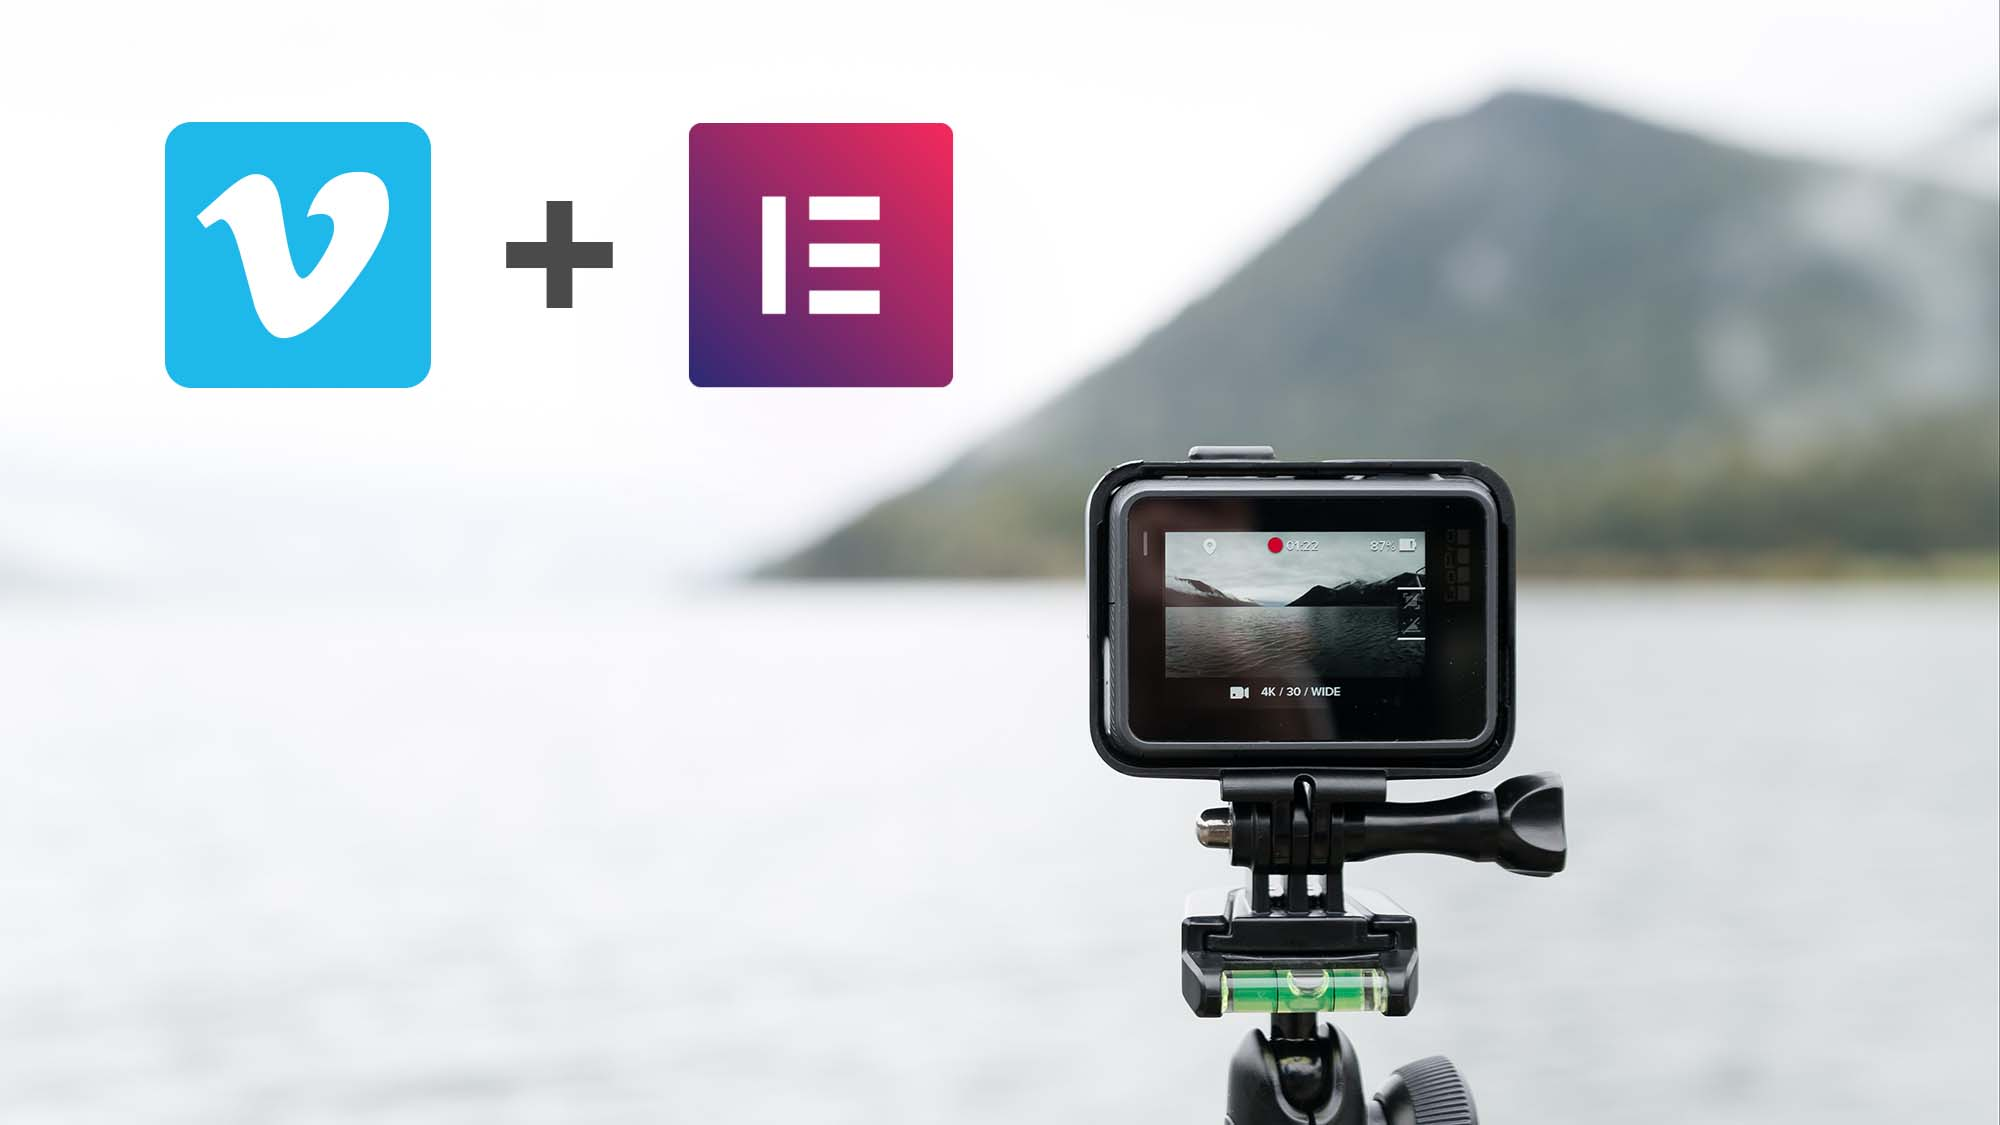 Vimeo and elementor icons next to video camera